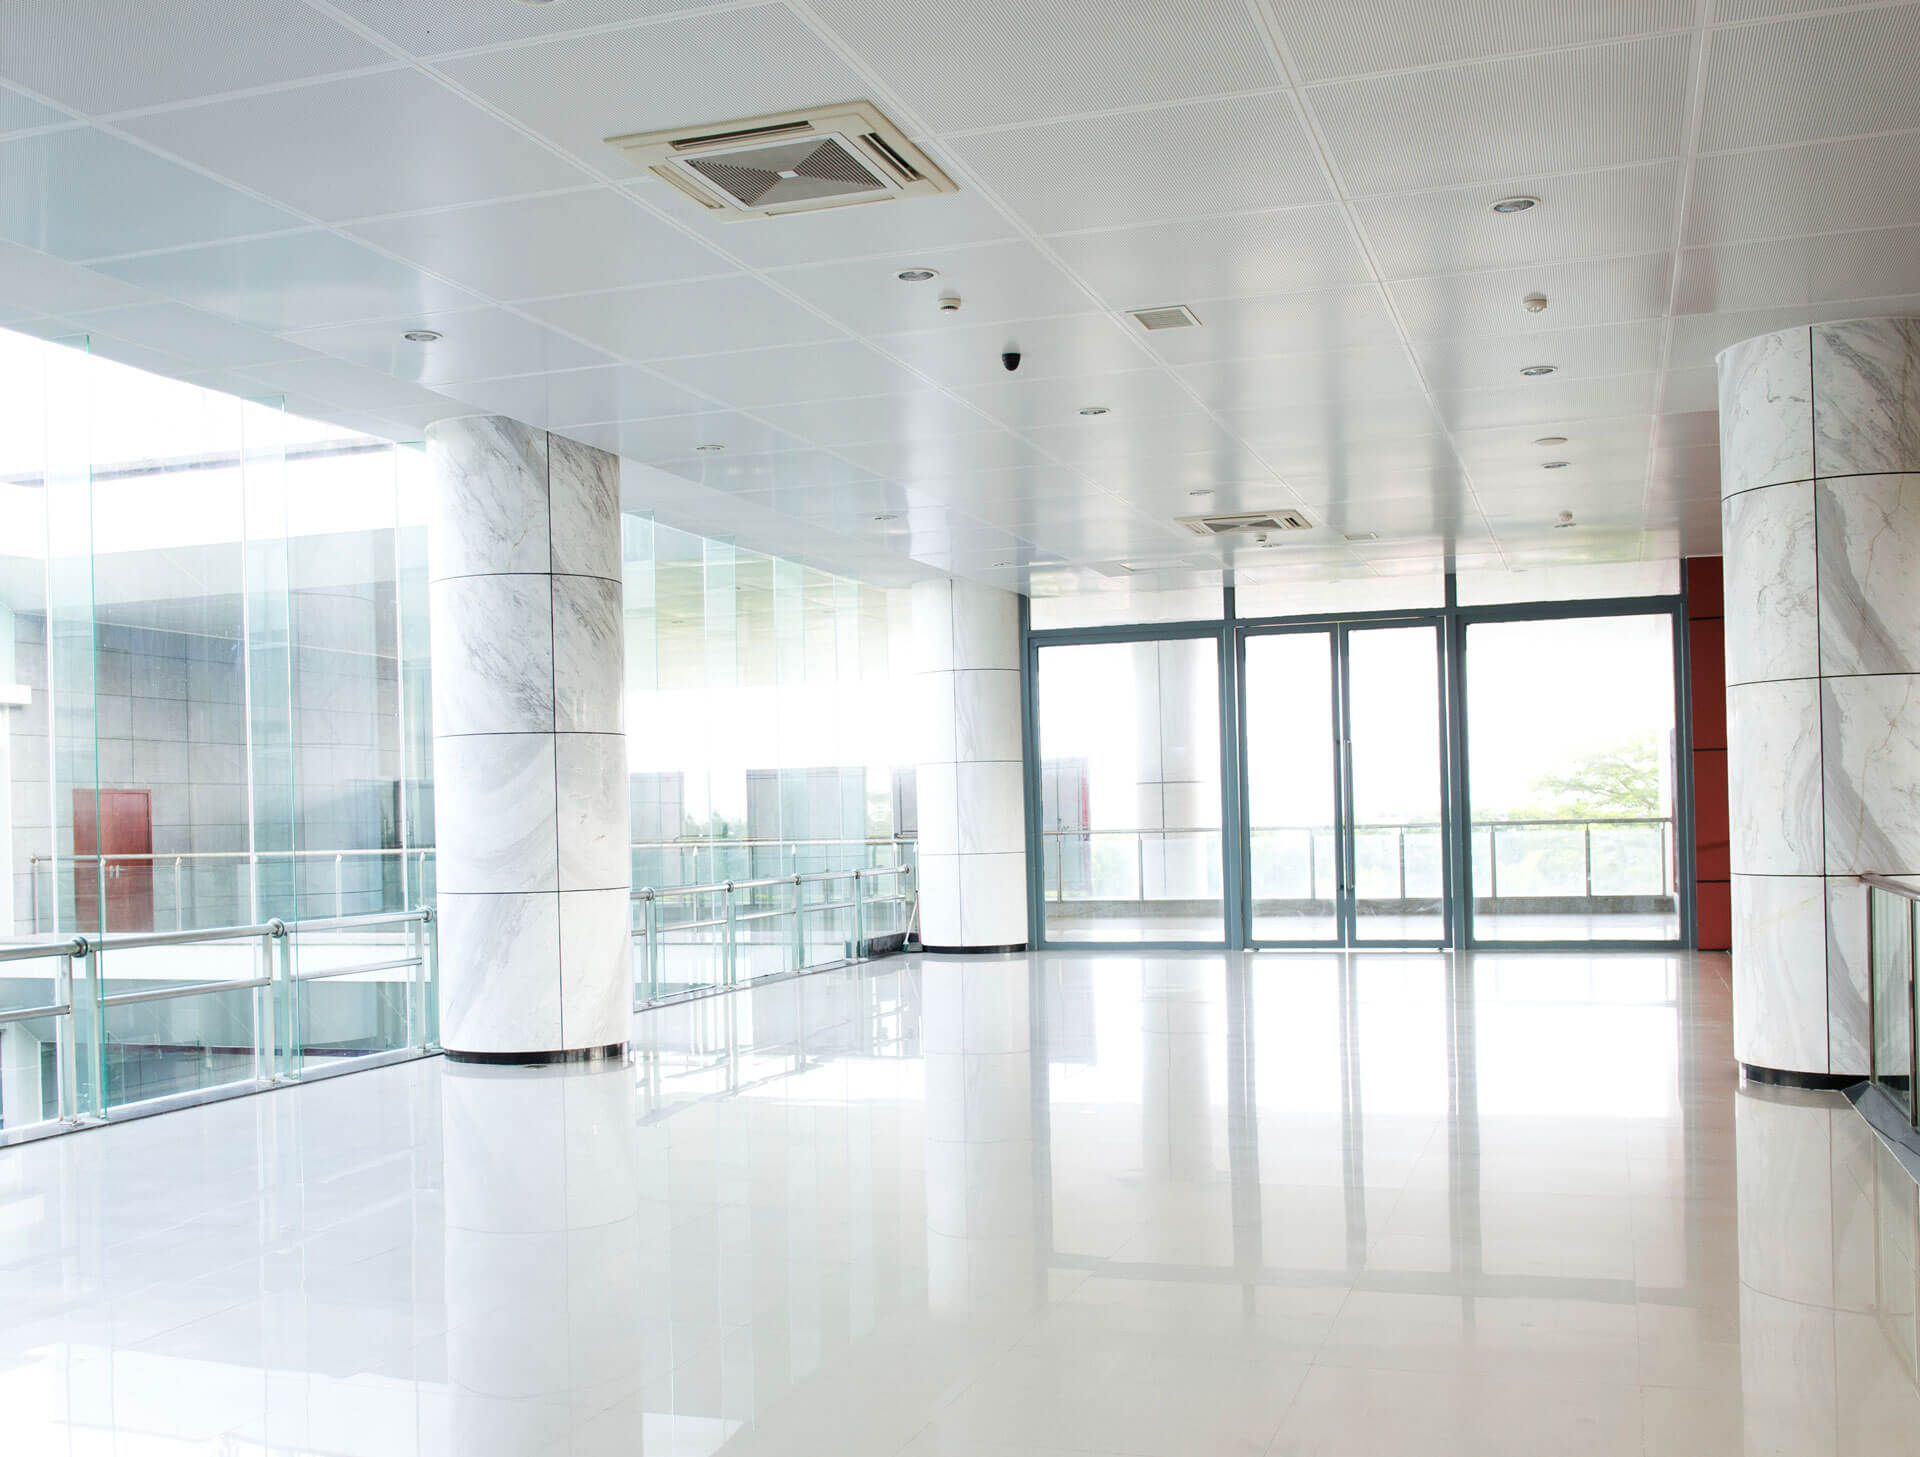 Sound Cleaning Commercial Floor Cleaning Services Company